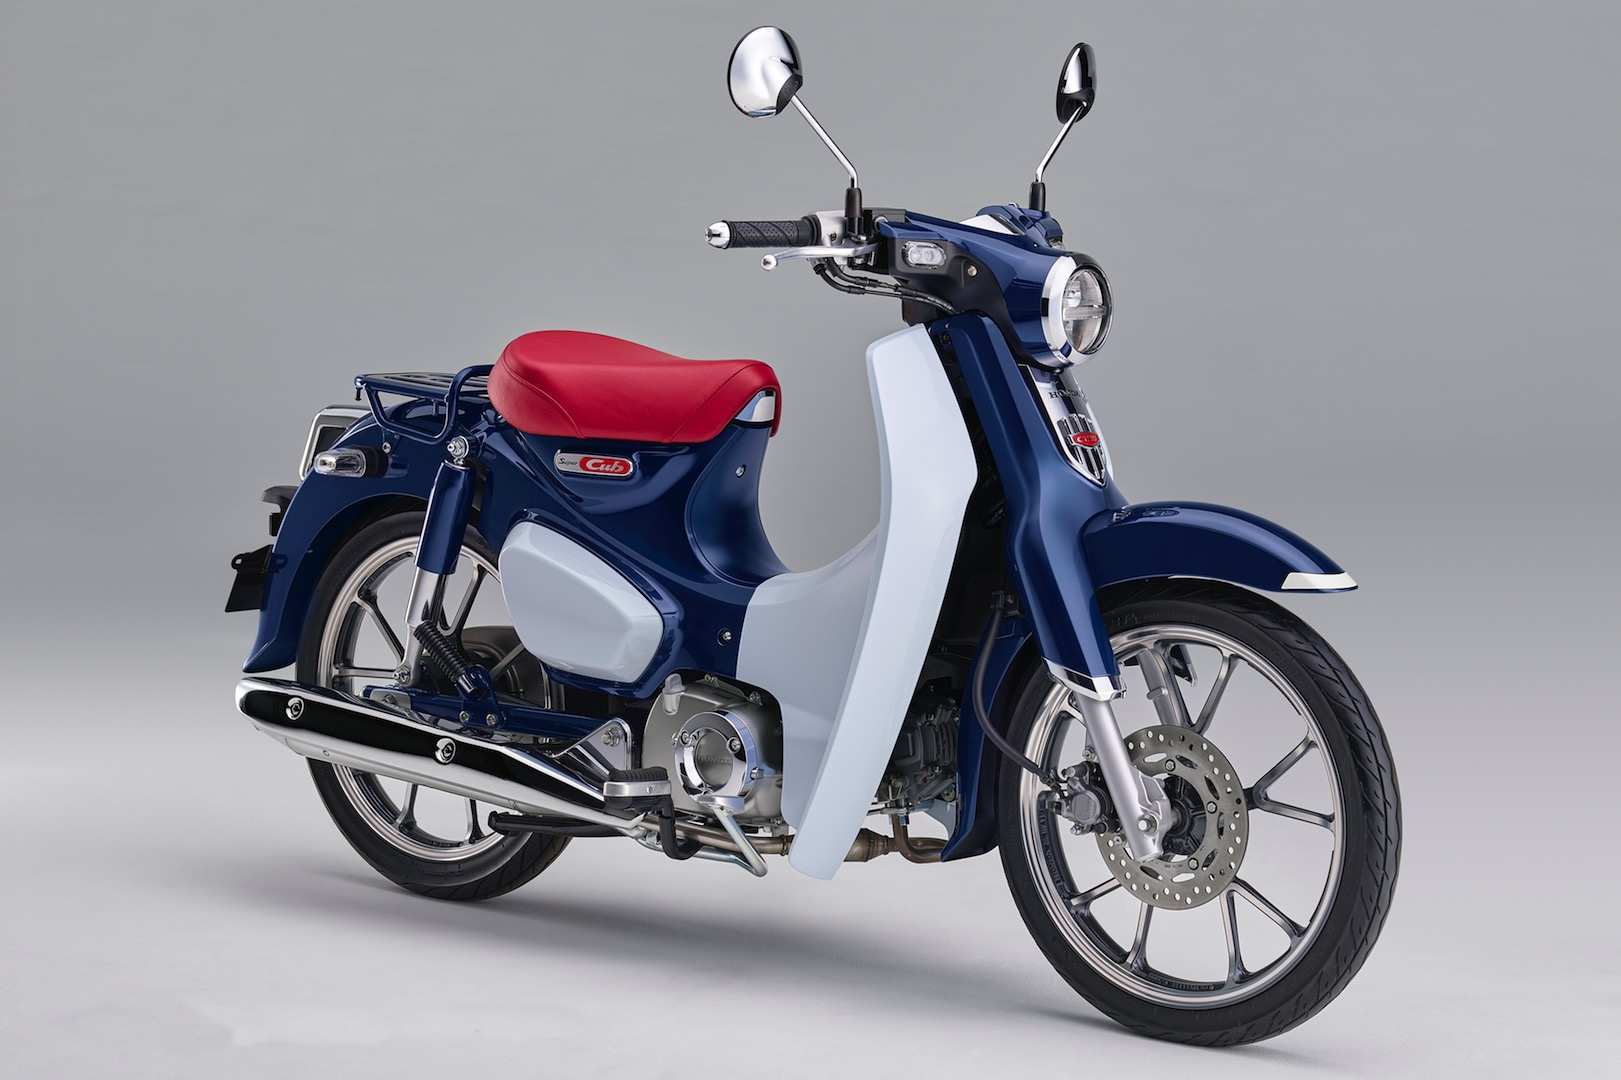 49 Concept of 2020 Honda Super Cub Top Speed Redesign with 2020 Honda Super Cub Top Speed